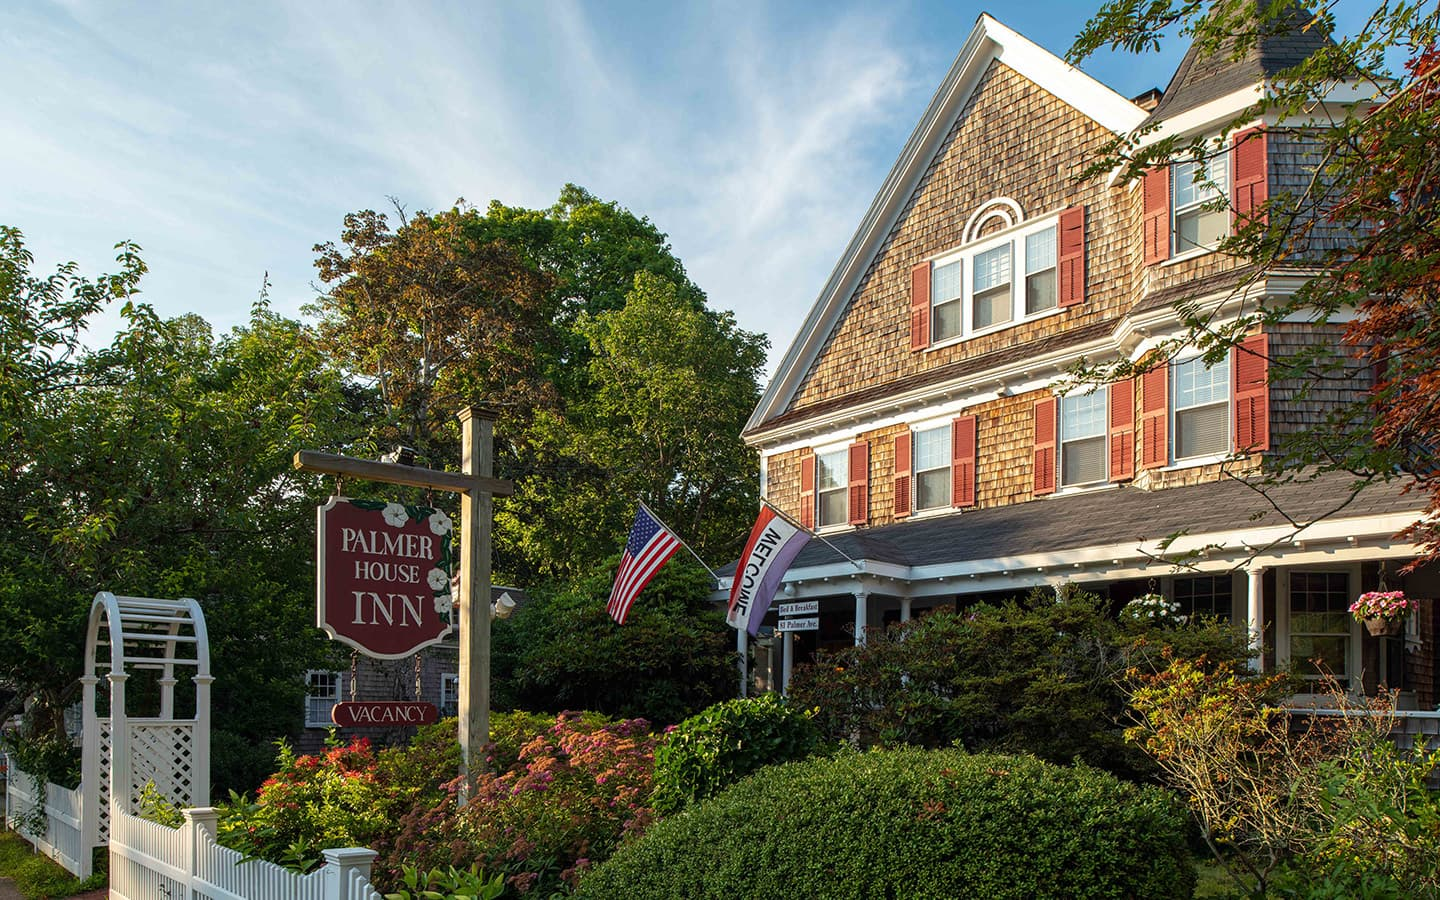 Exterior view of Palmer House Inn